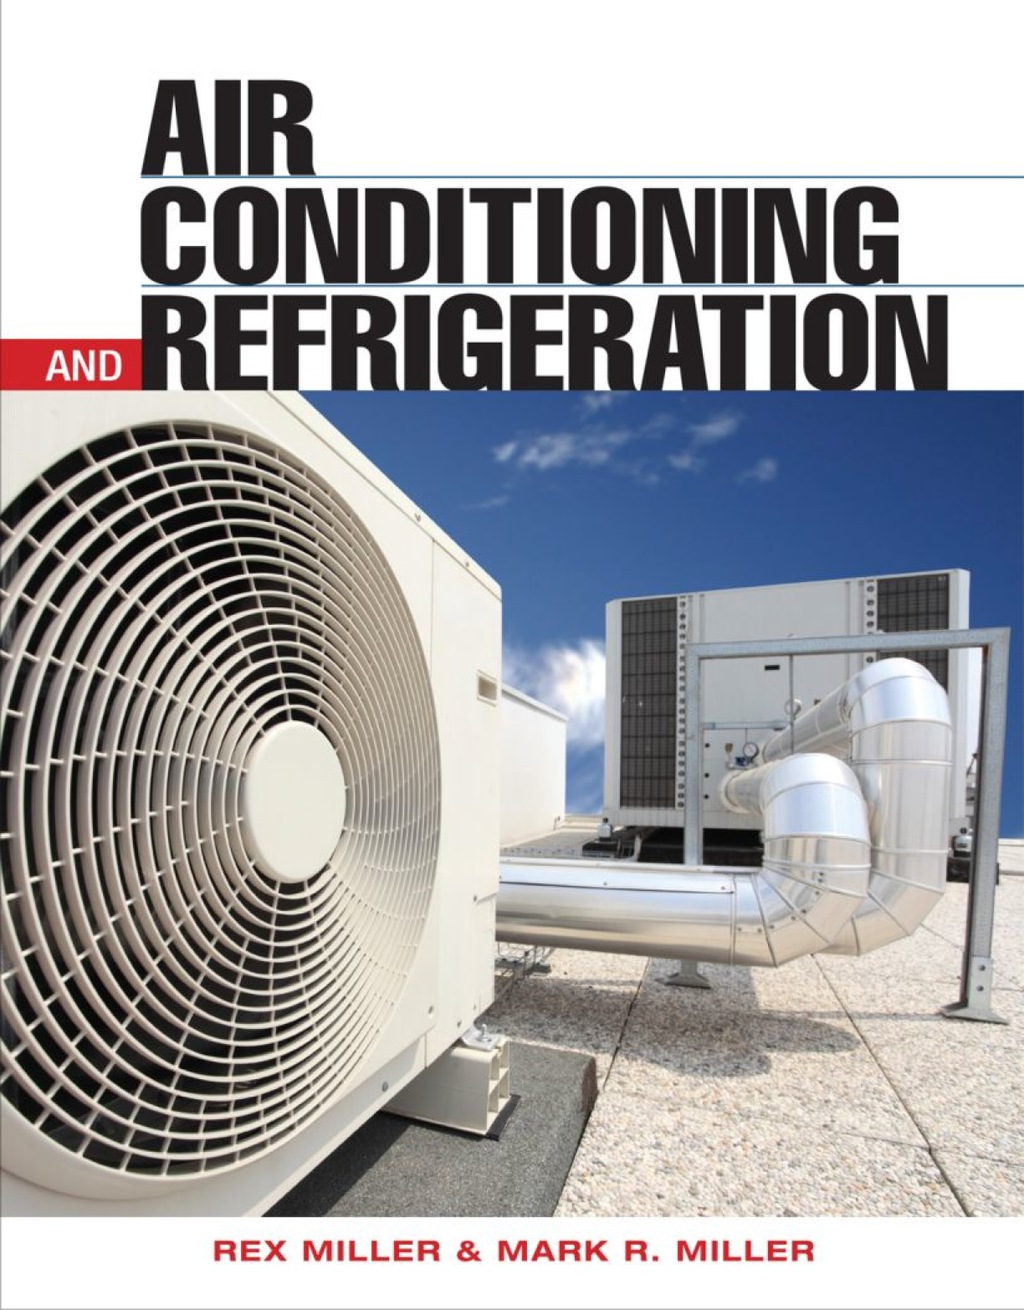 Air Conditioning and Refrigeration, Second Edition (ebook) eBooks